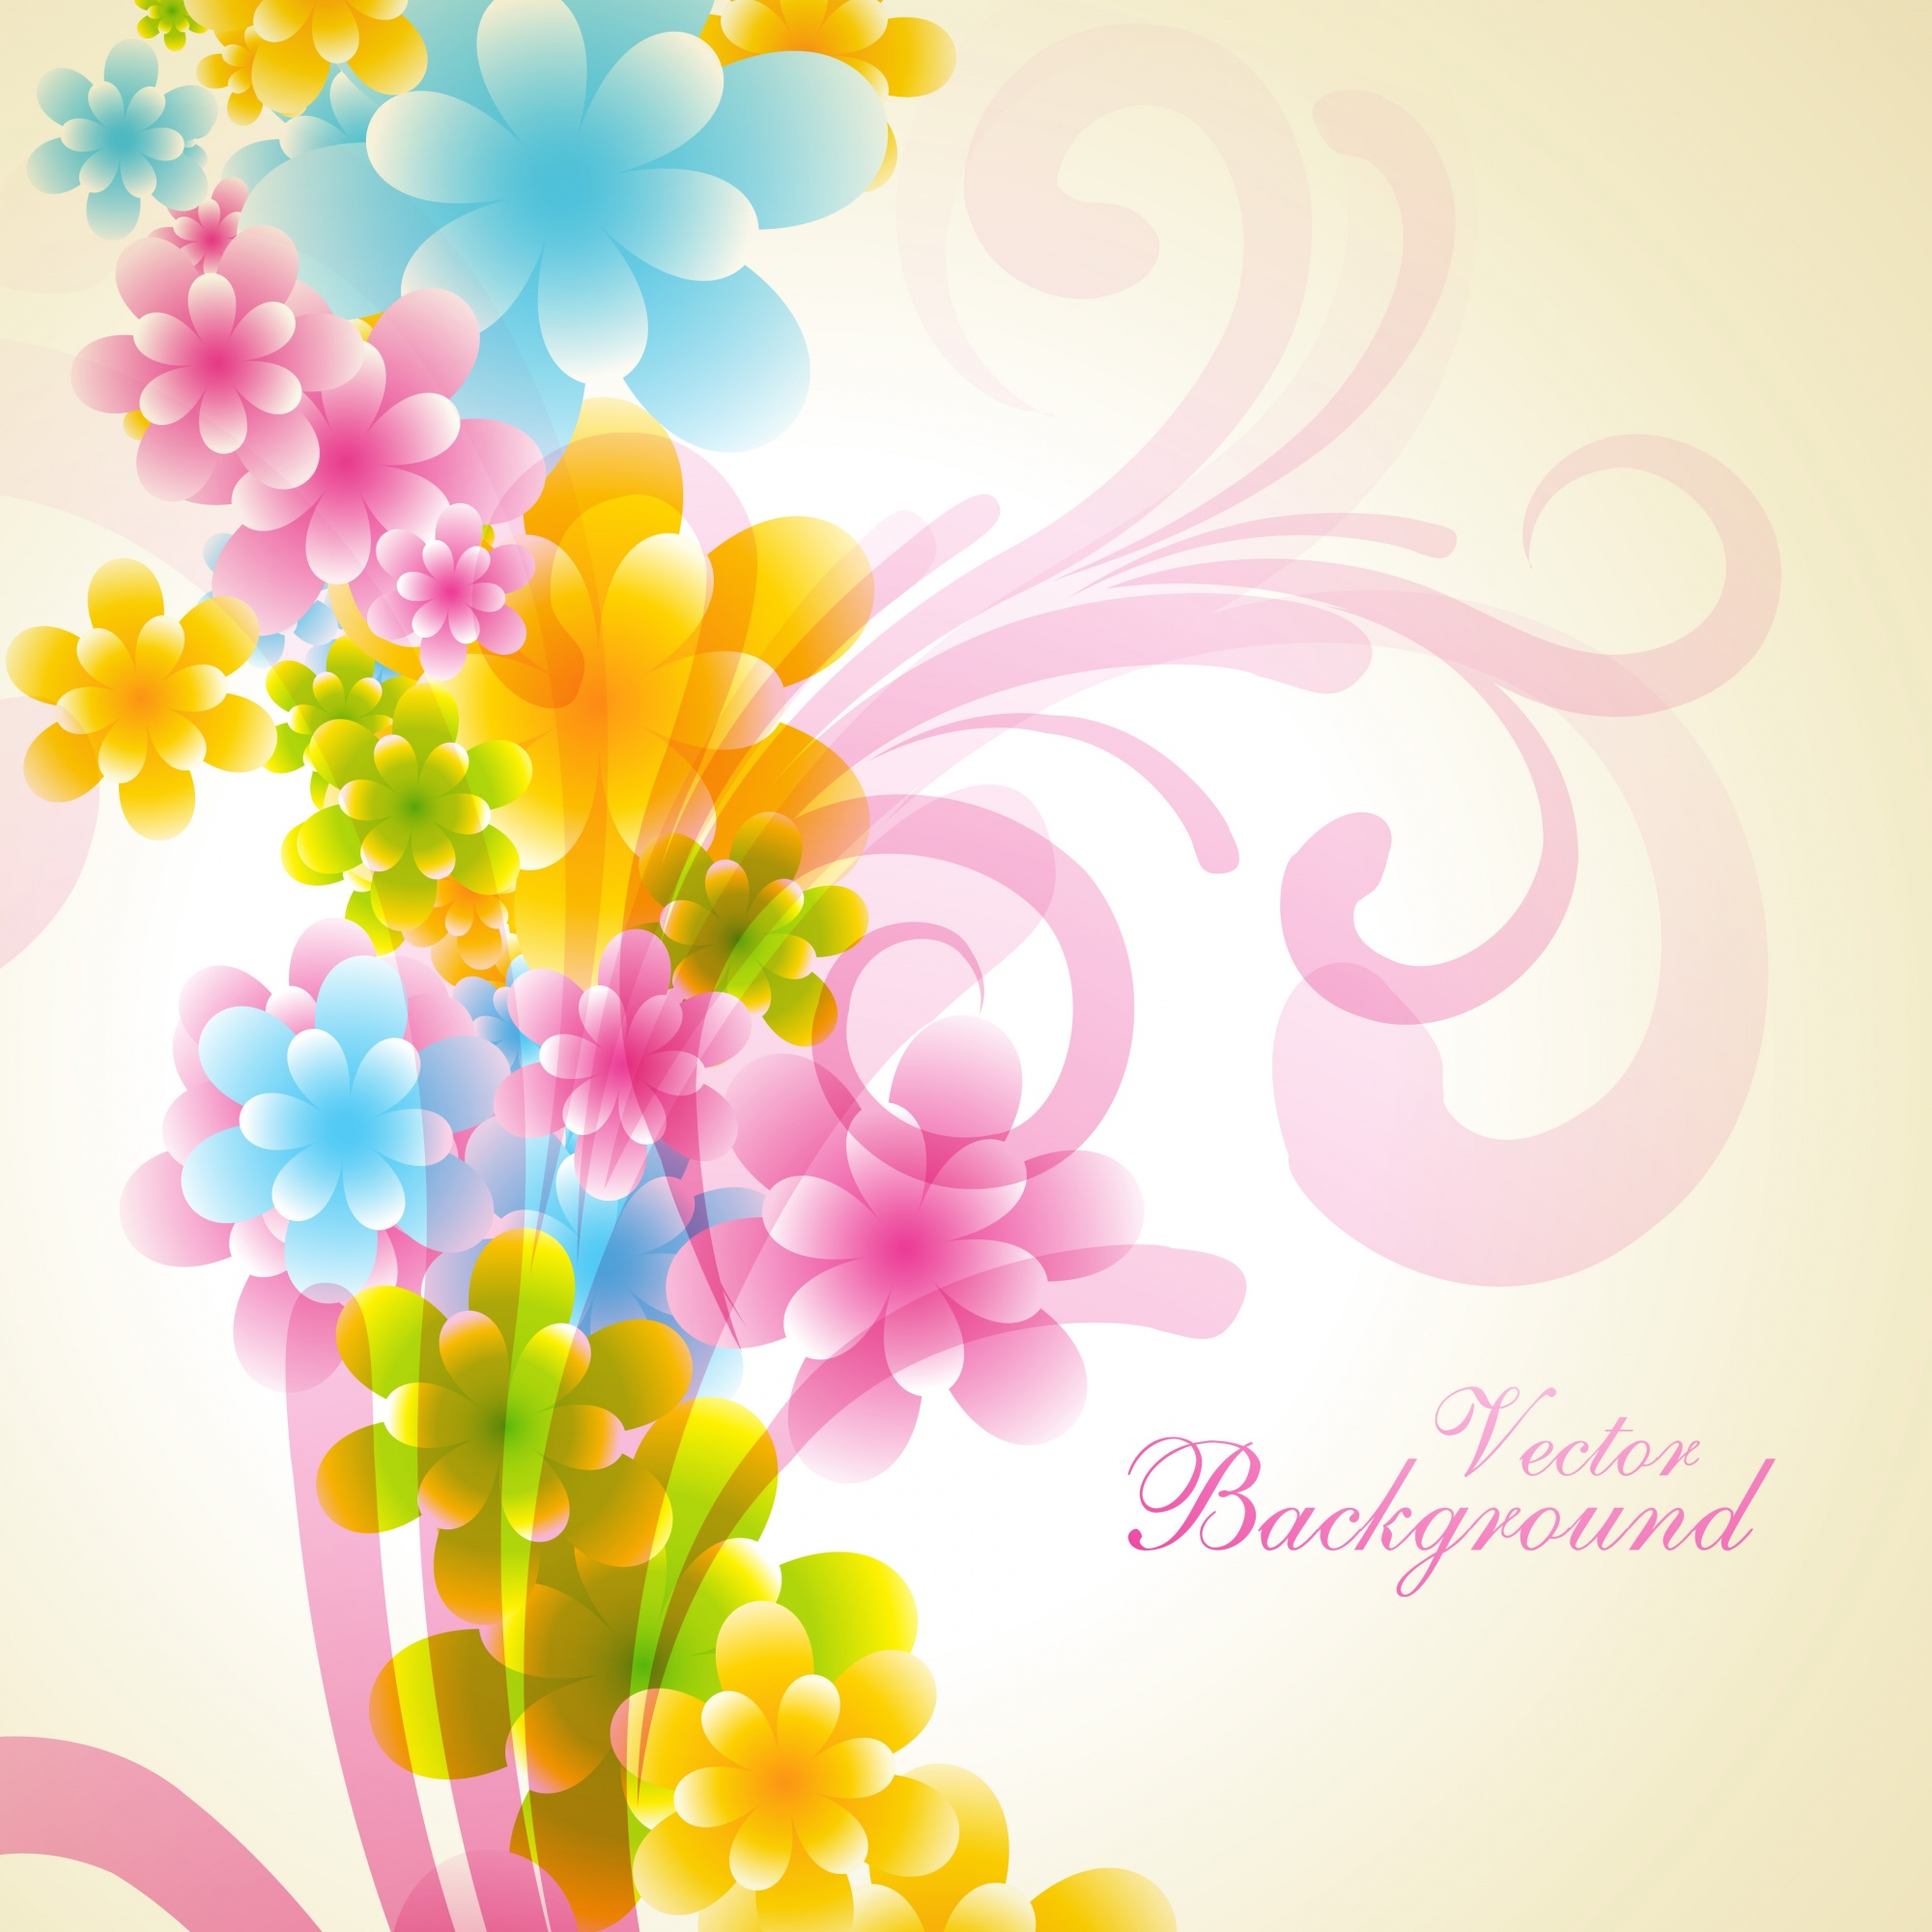 Beautiful shiny floral background design